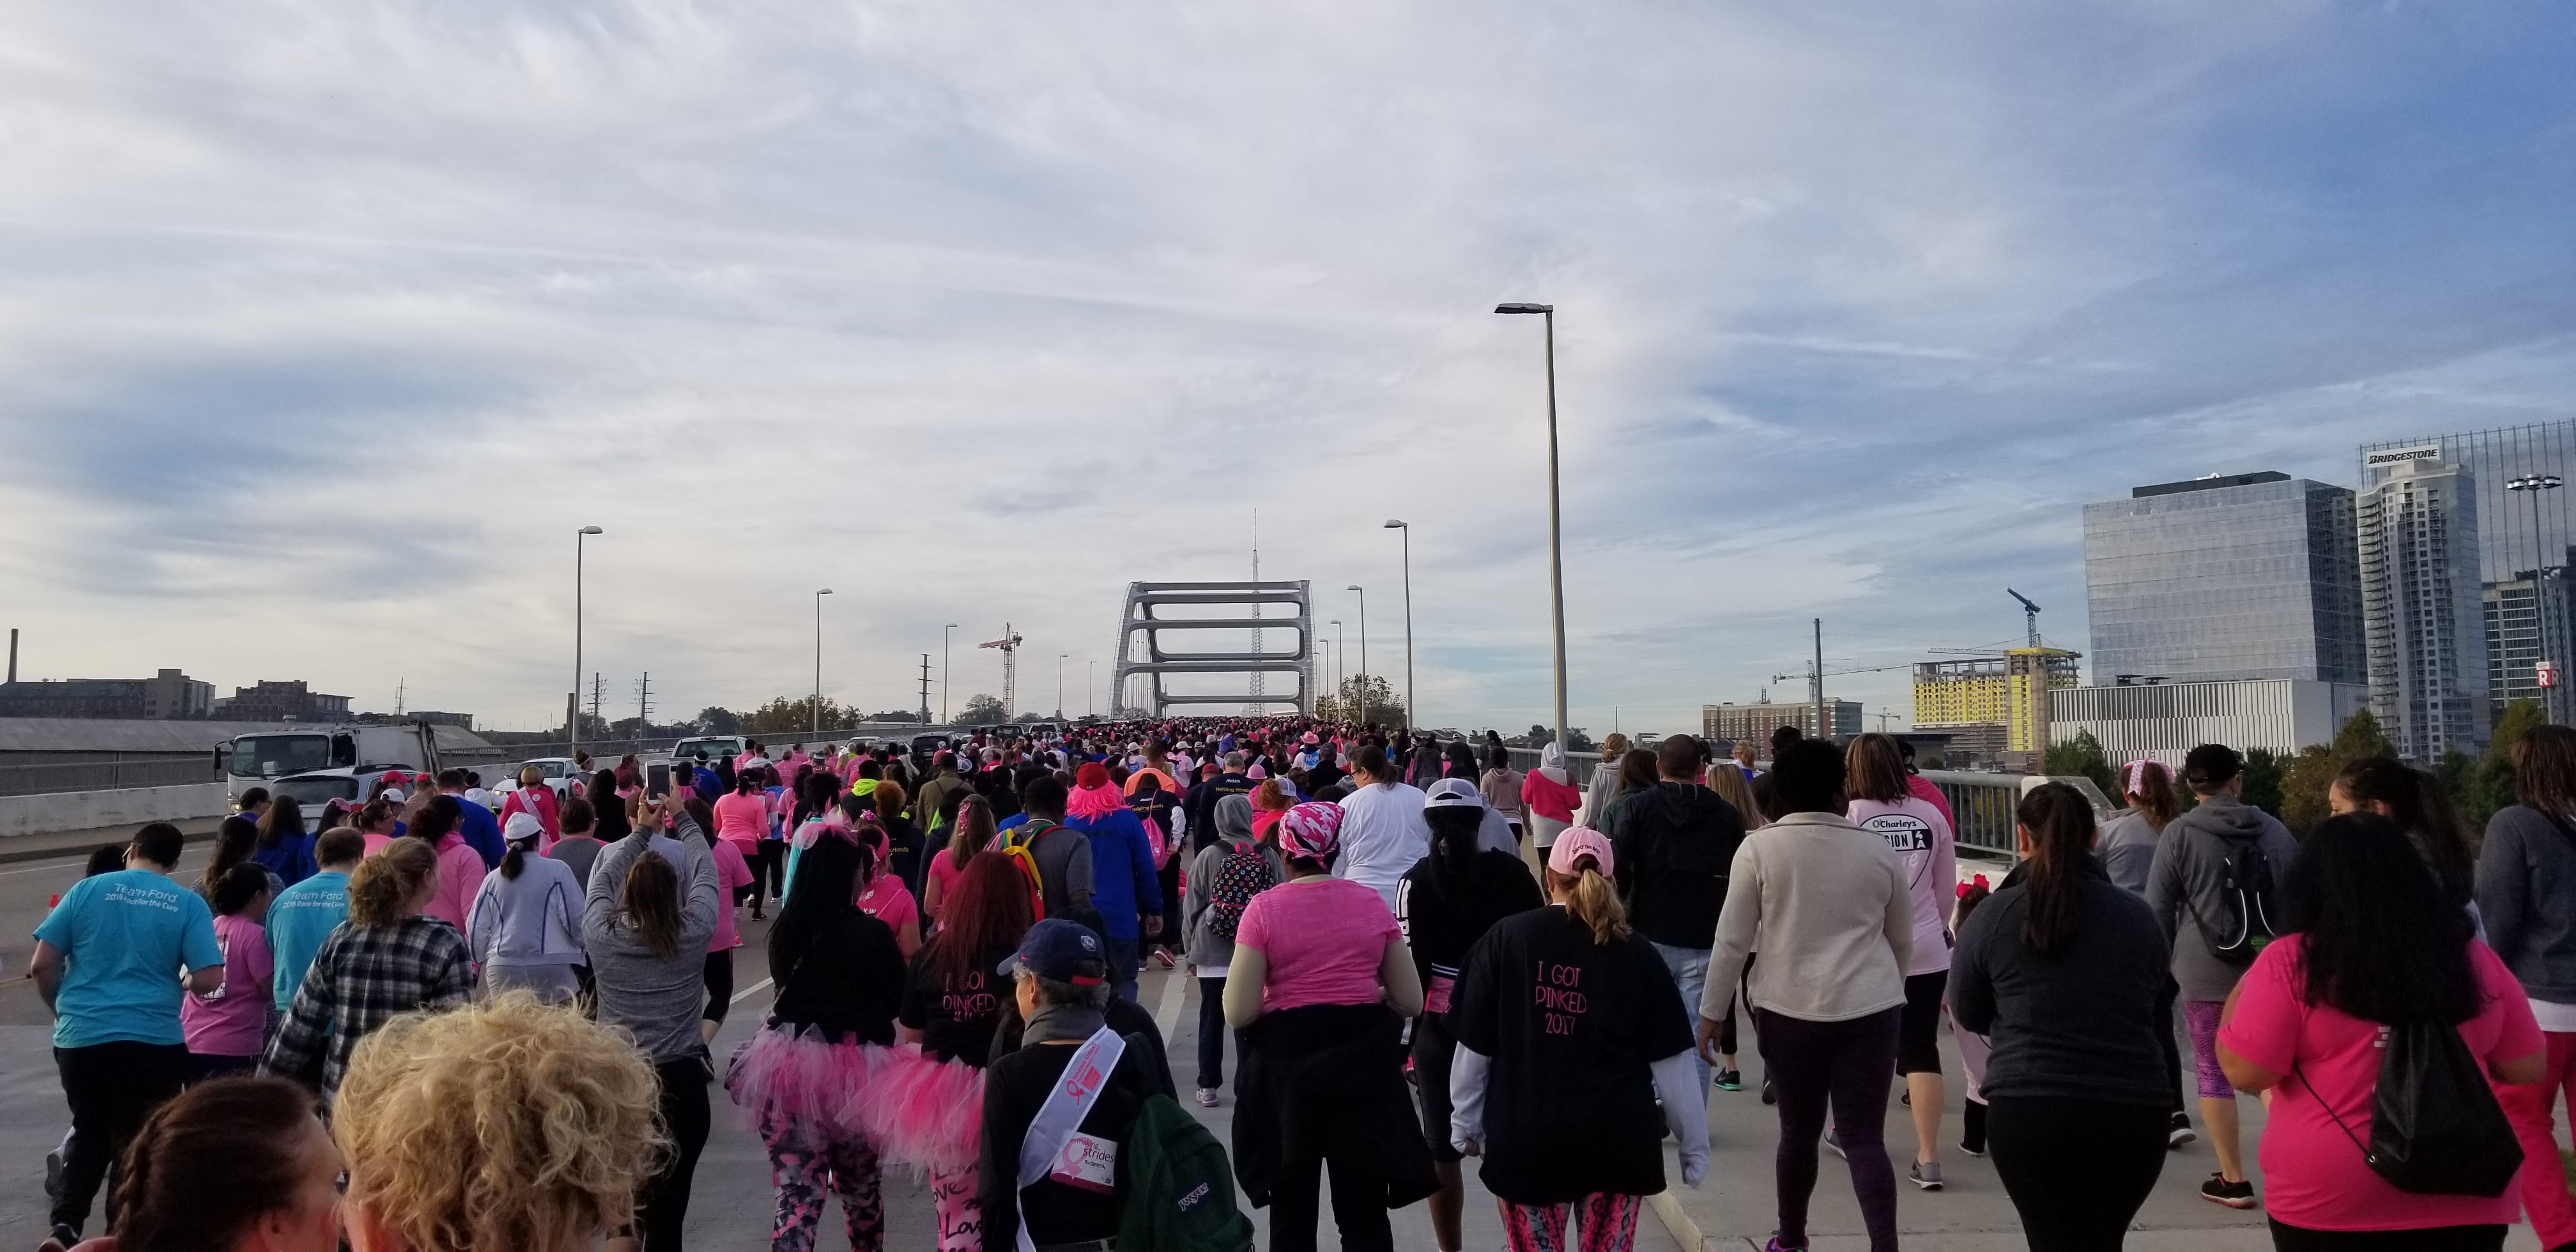 FreshPoint-Nashville-Breast-Cancer-Walk-Crowd